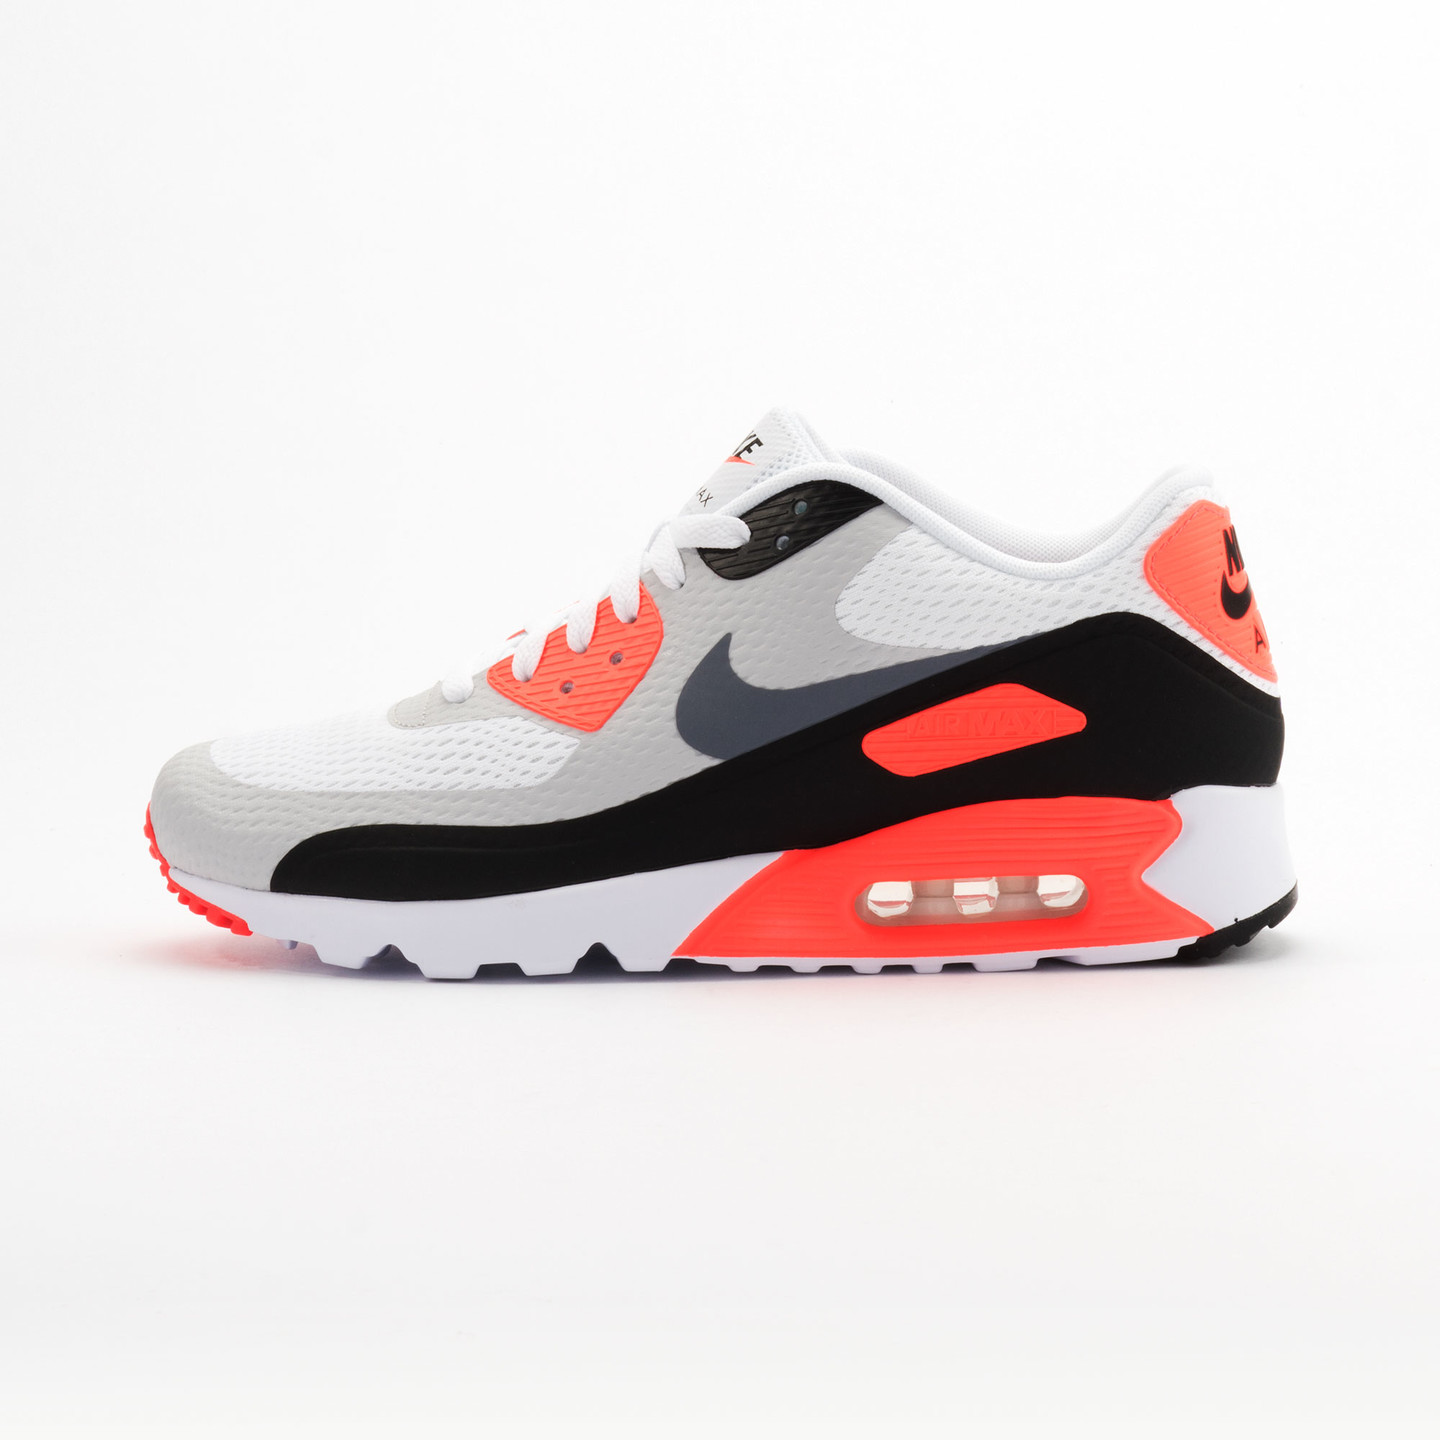 Nike Air Max 90 OG Essential White / Black / Infrared 819474-106-42